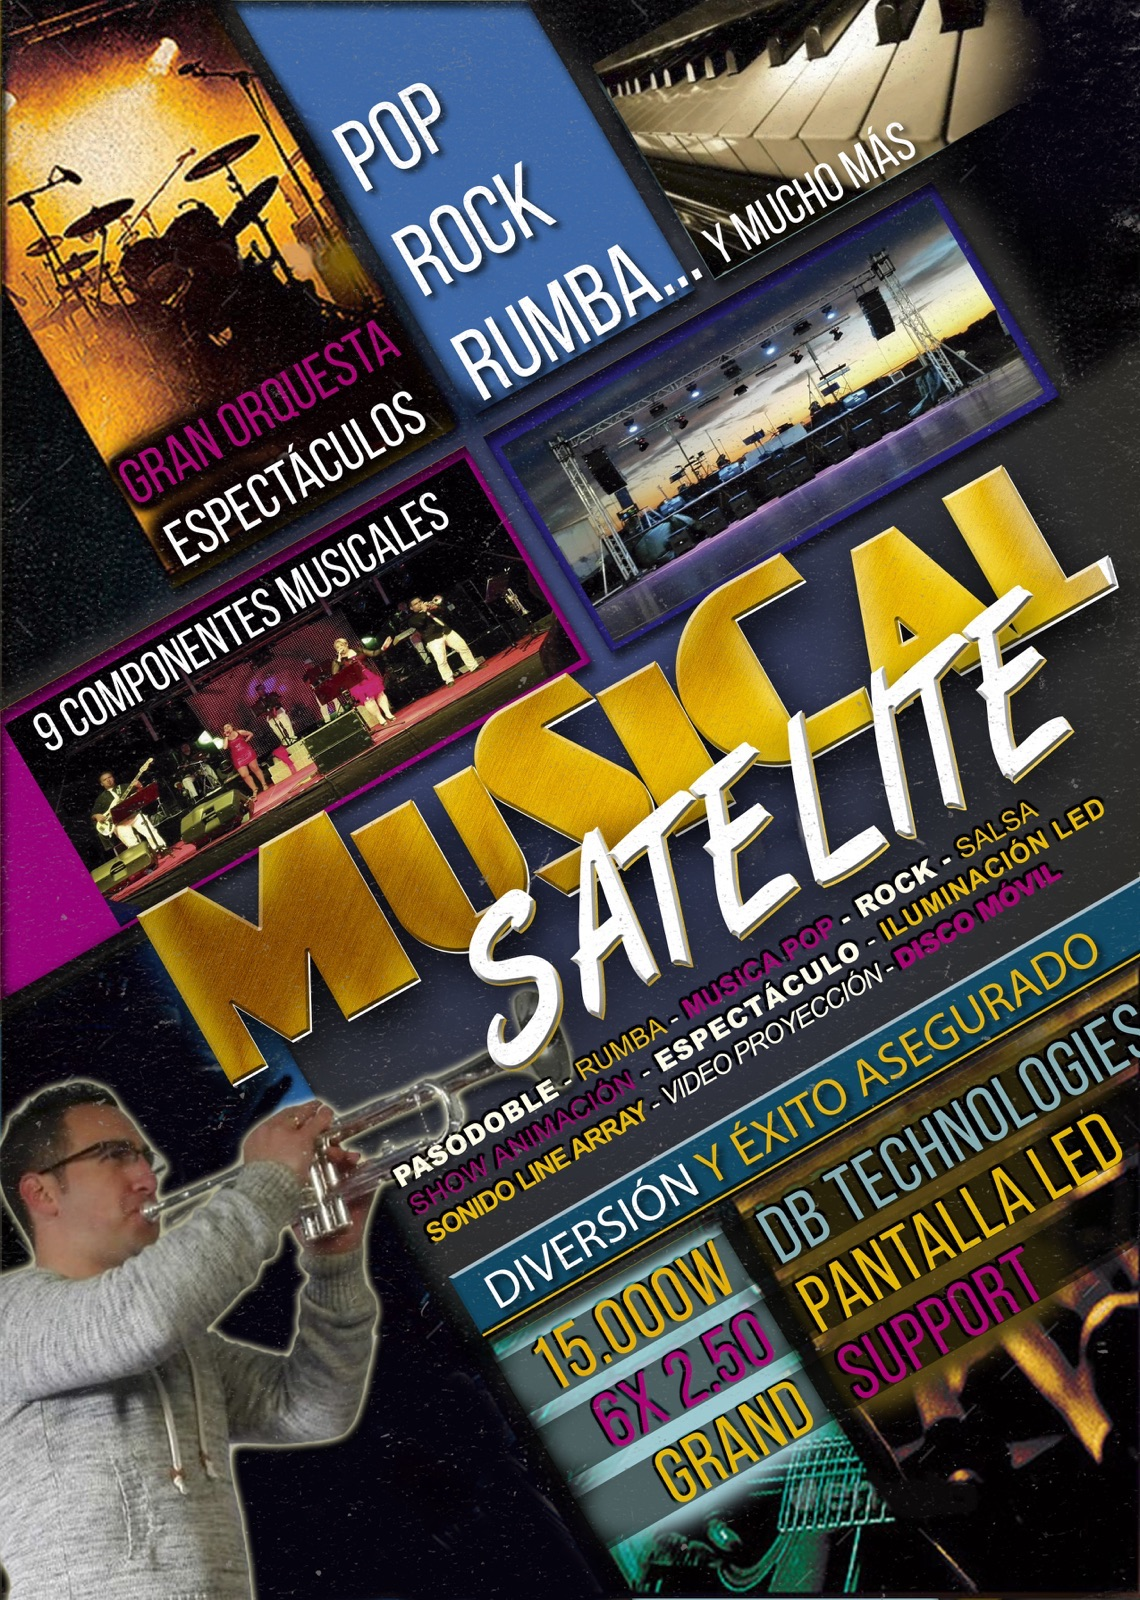 Orquestas - MUSICAL SATELITE